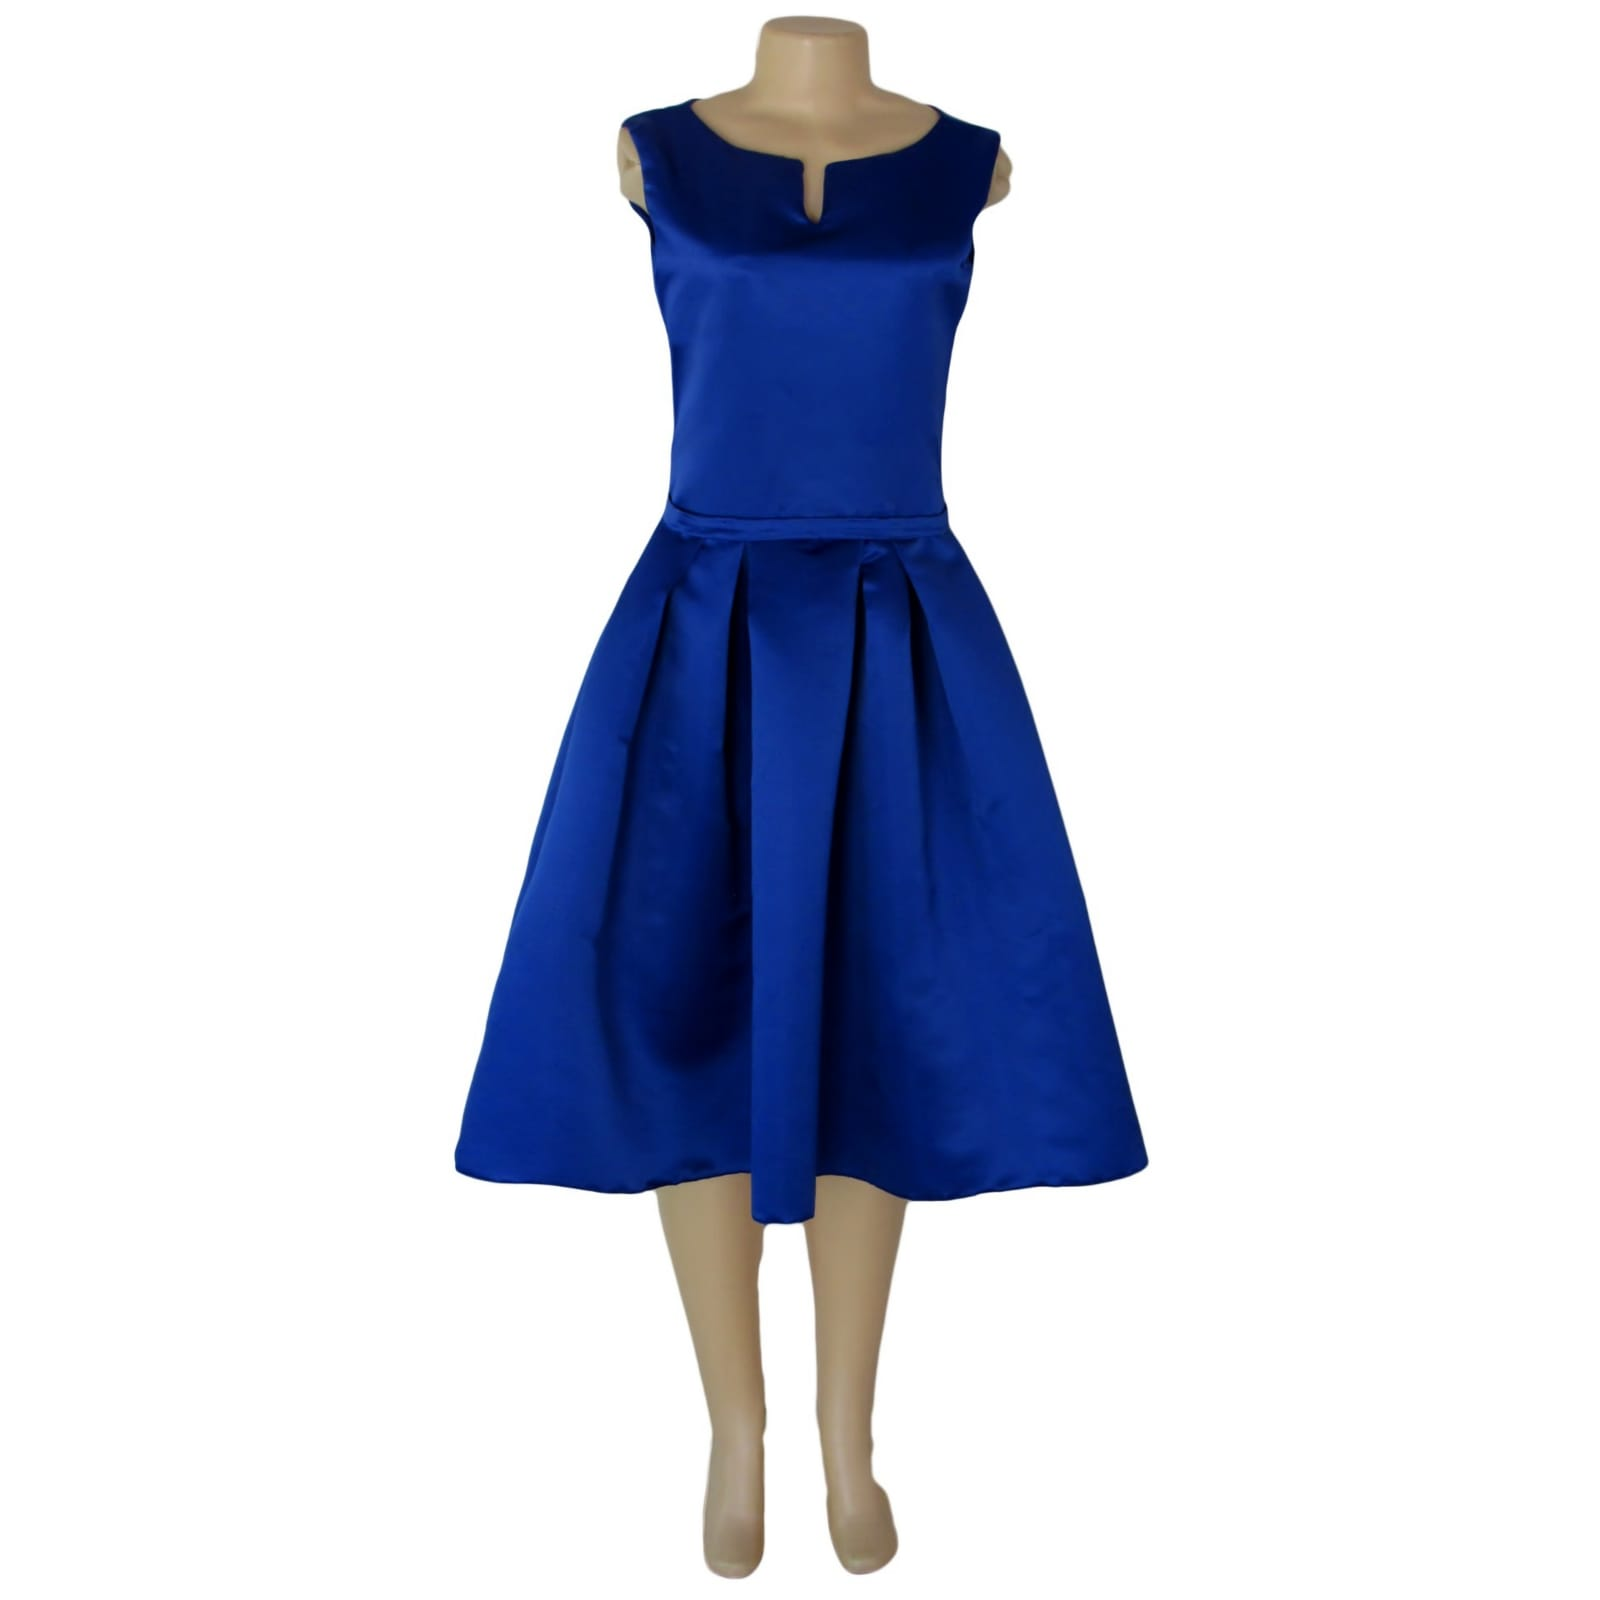 Royal blue 3/4 length pleated evening dress 4 royal blue 3/4 length pleated evening dress with a fitted bodice with a slit rounded neckline.